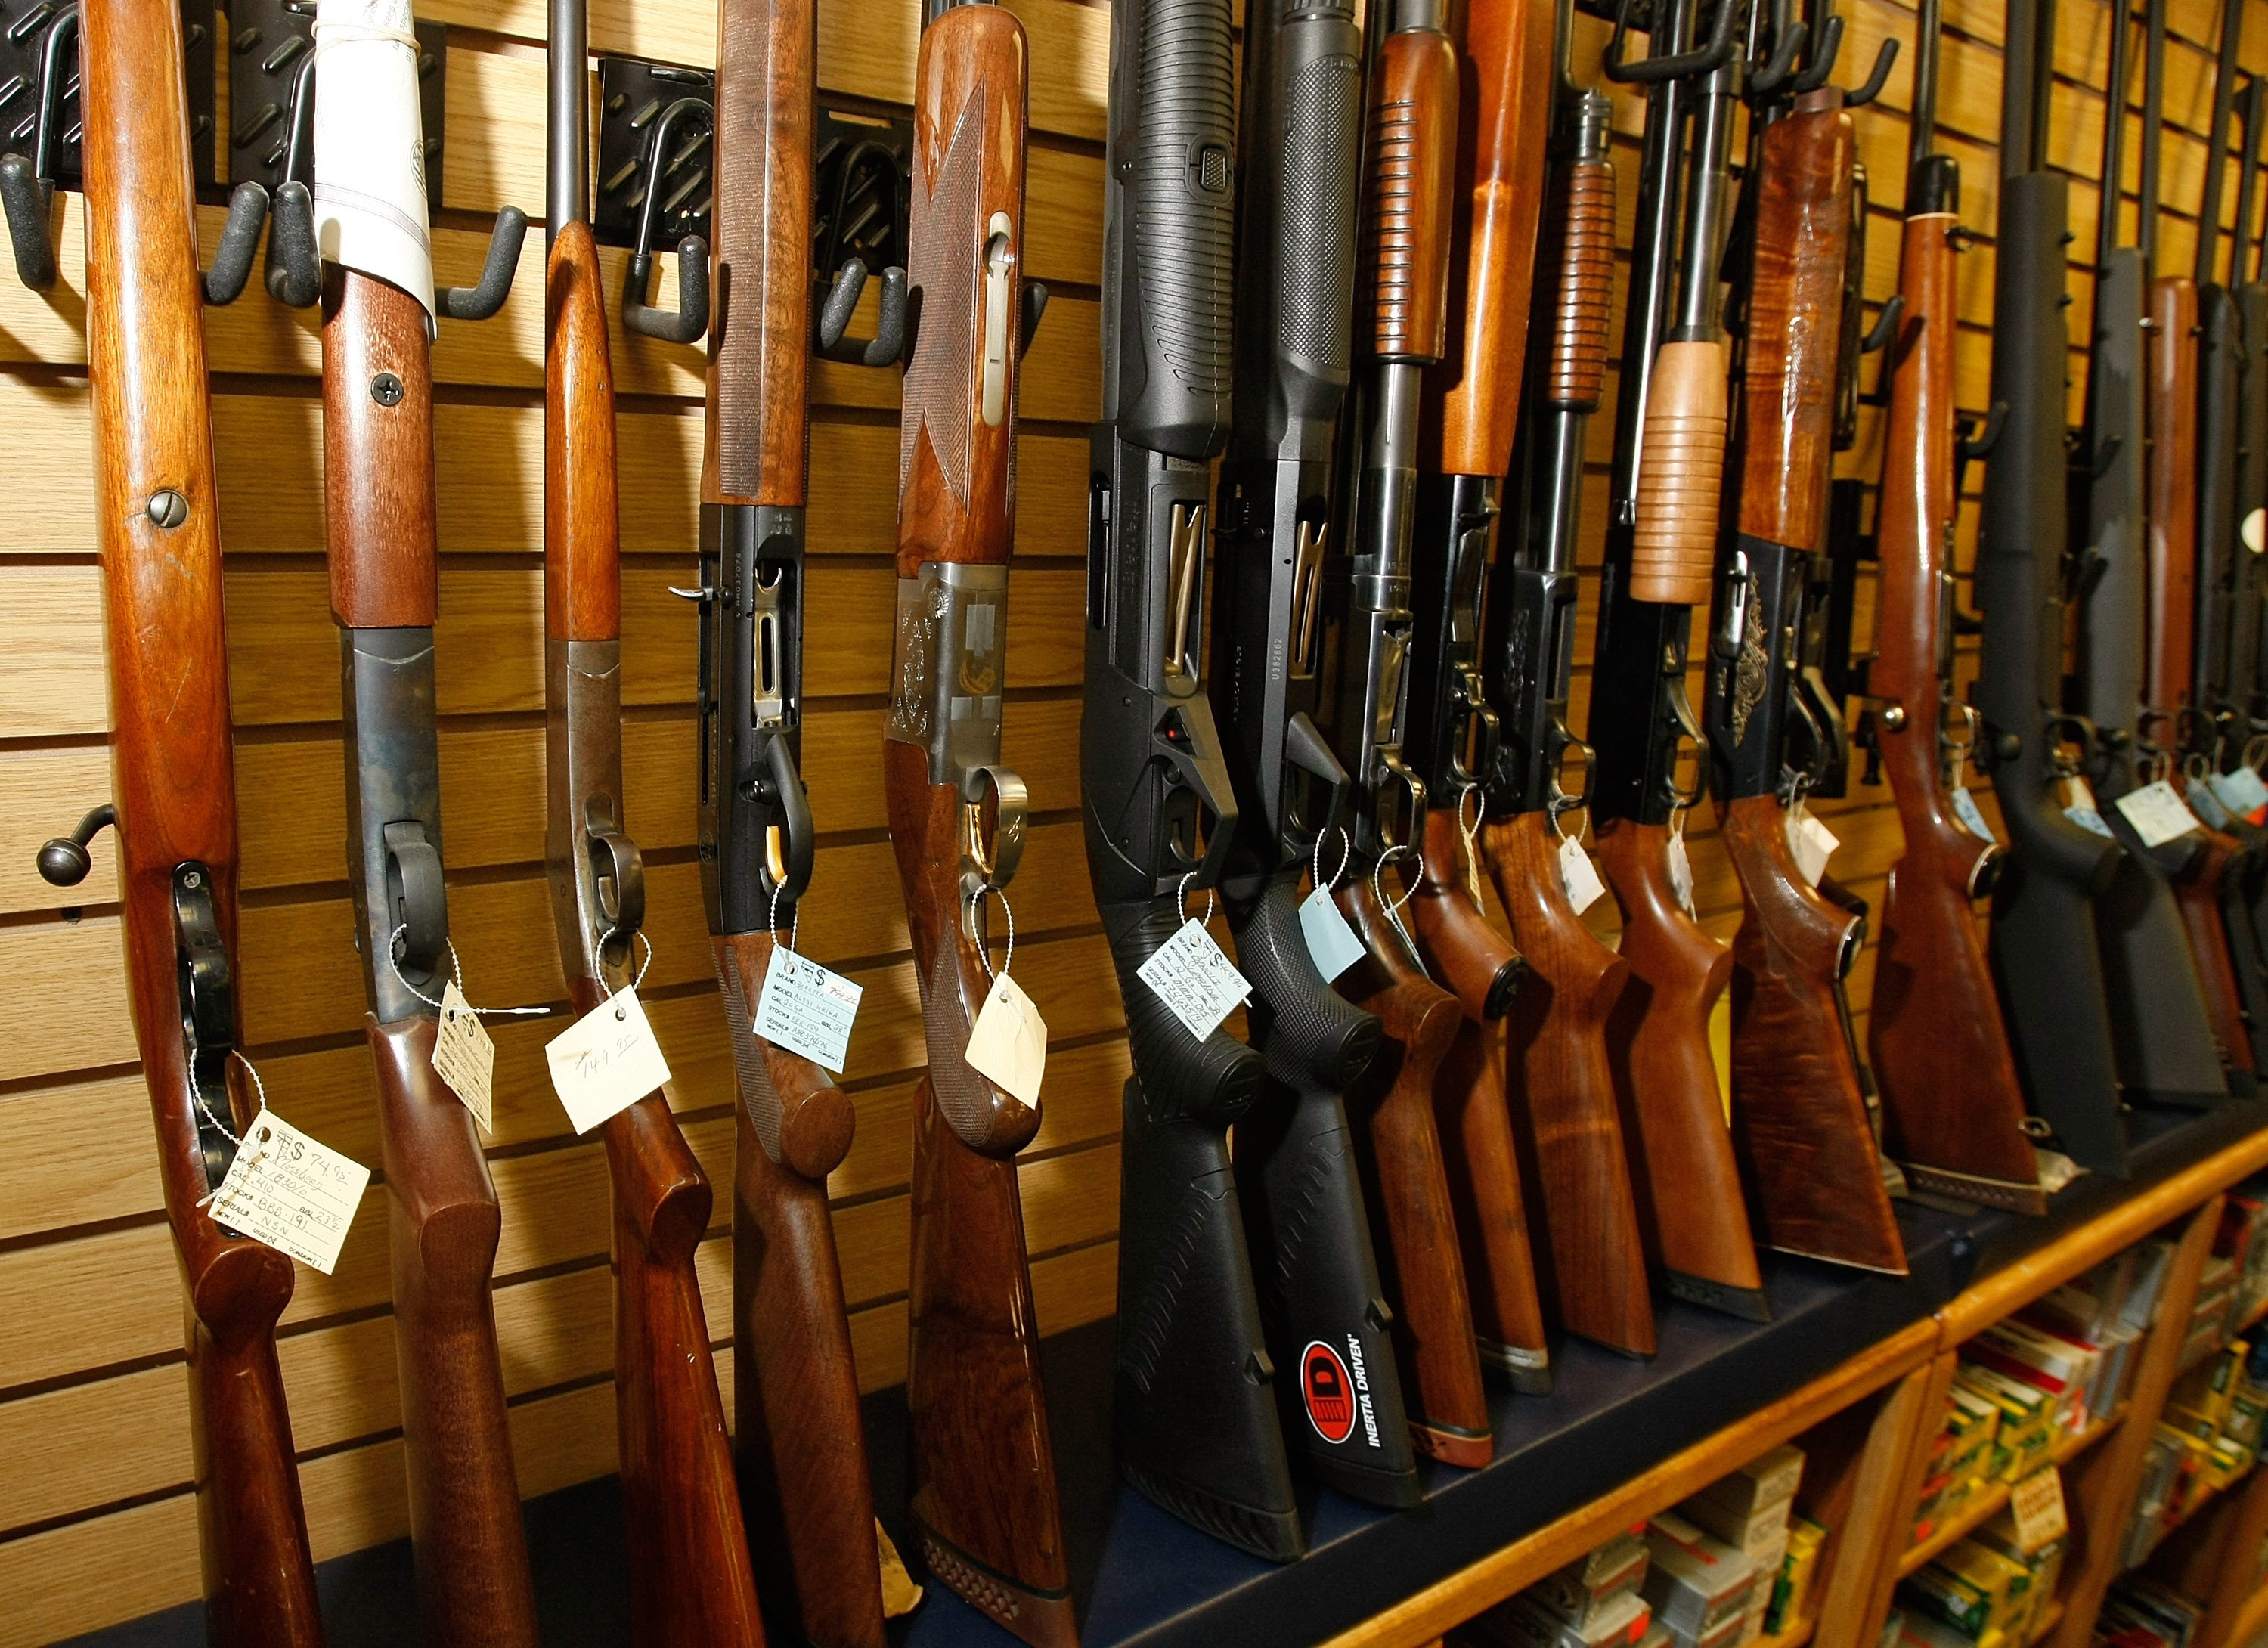 U.S. Sees Spike in Gun, Ammo Sales: 'I've Never Seen Anything Like It'